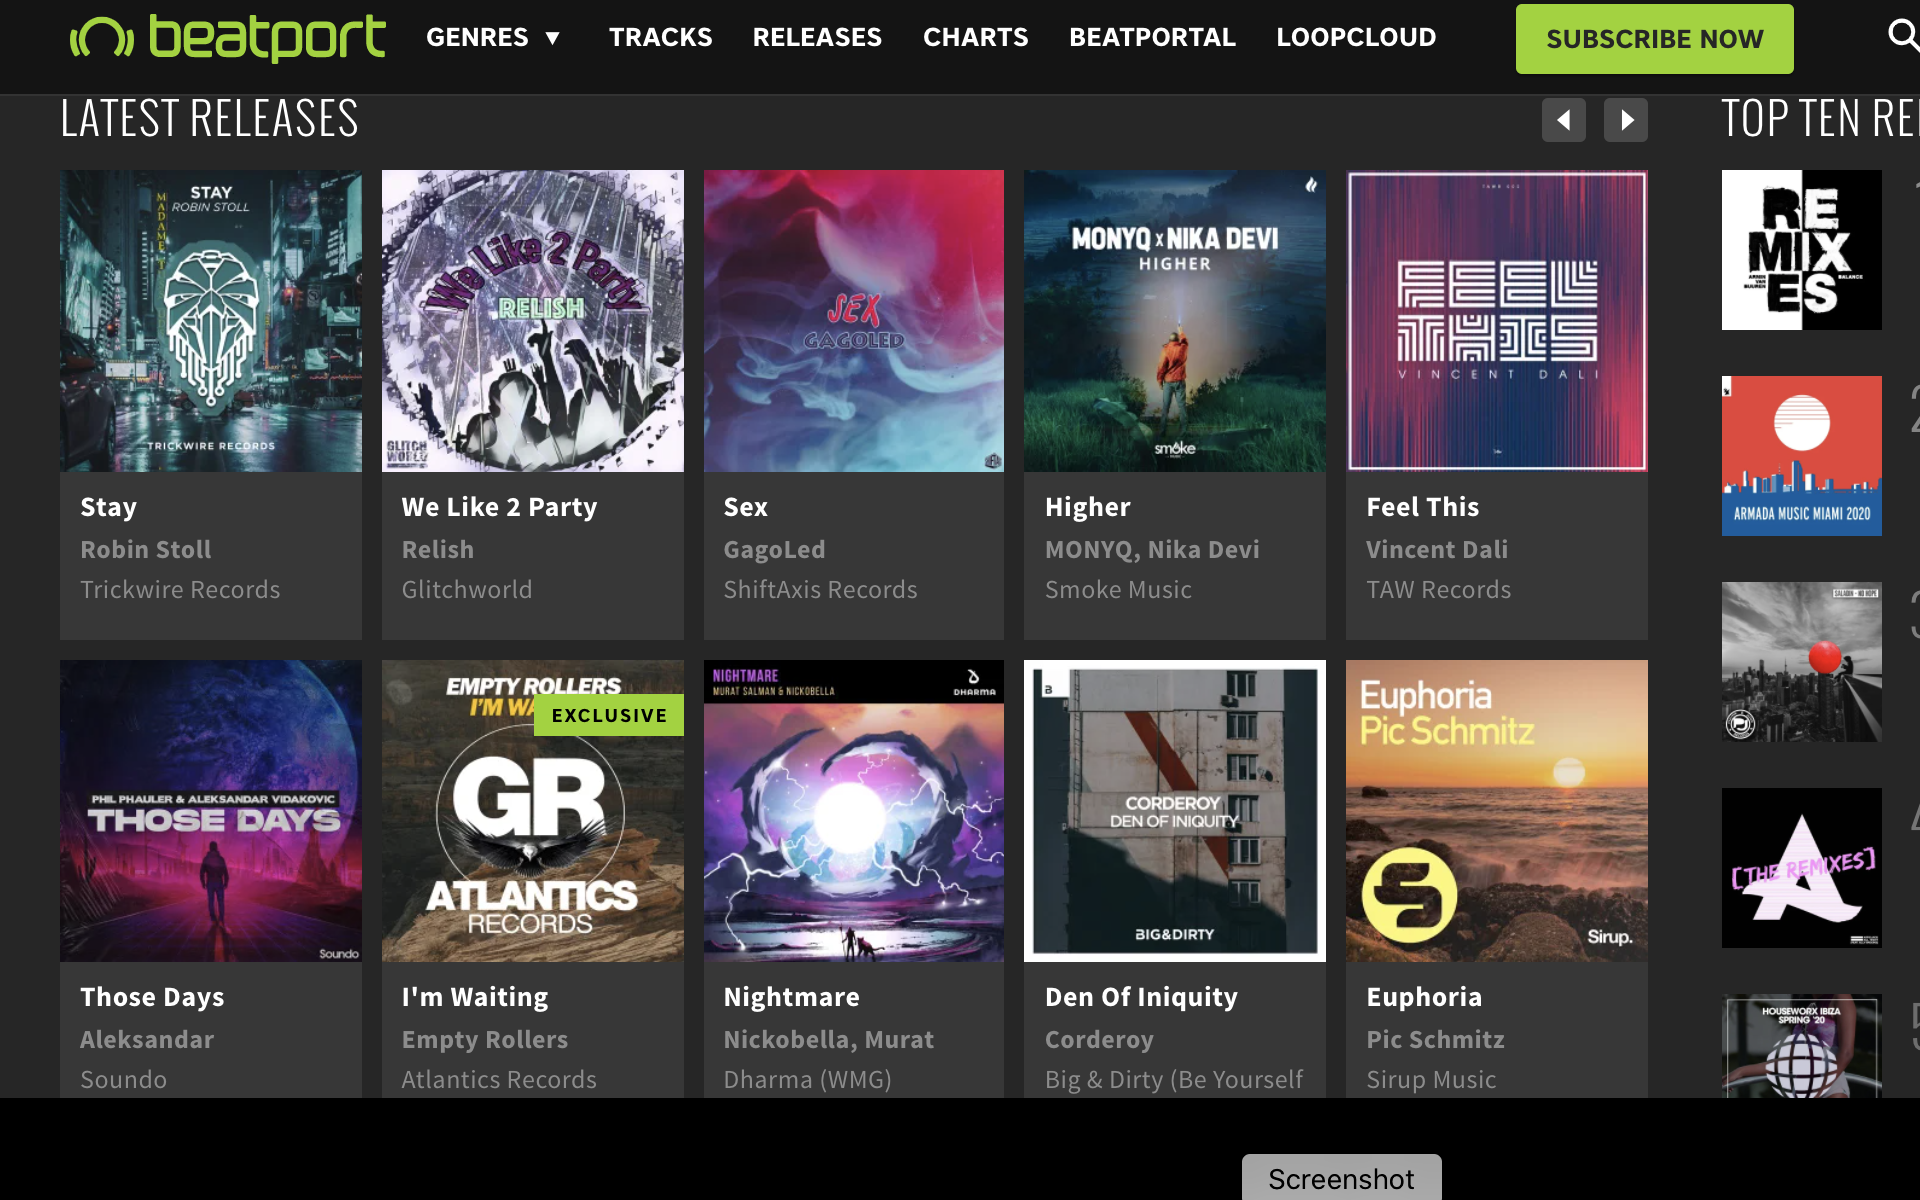 Sex Featured On Beatport